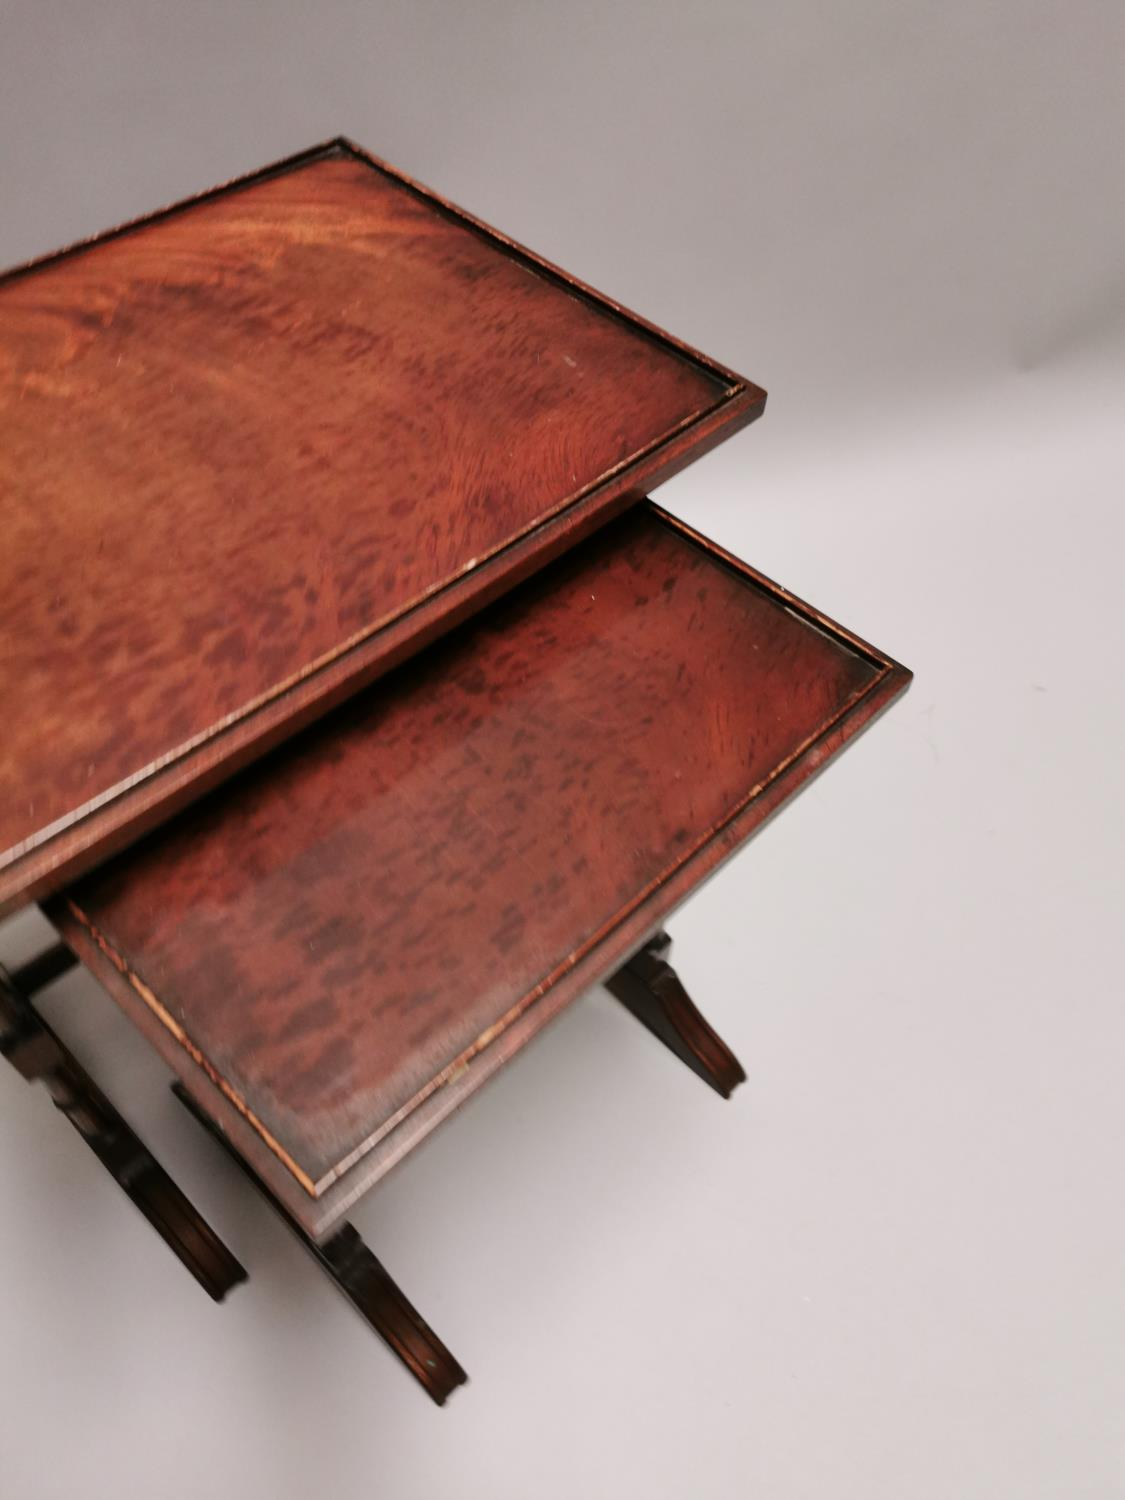 Nest of two mahogany tables - Image 2 of 5